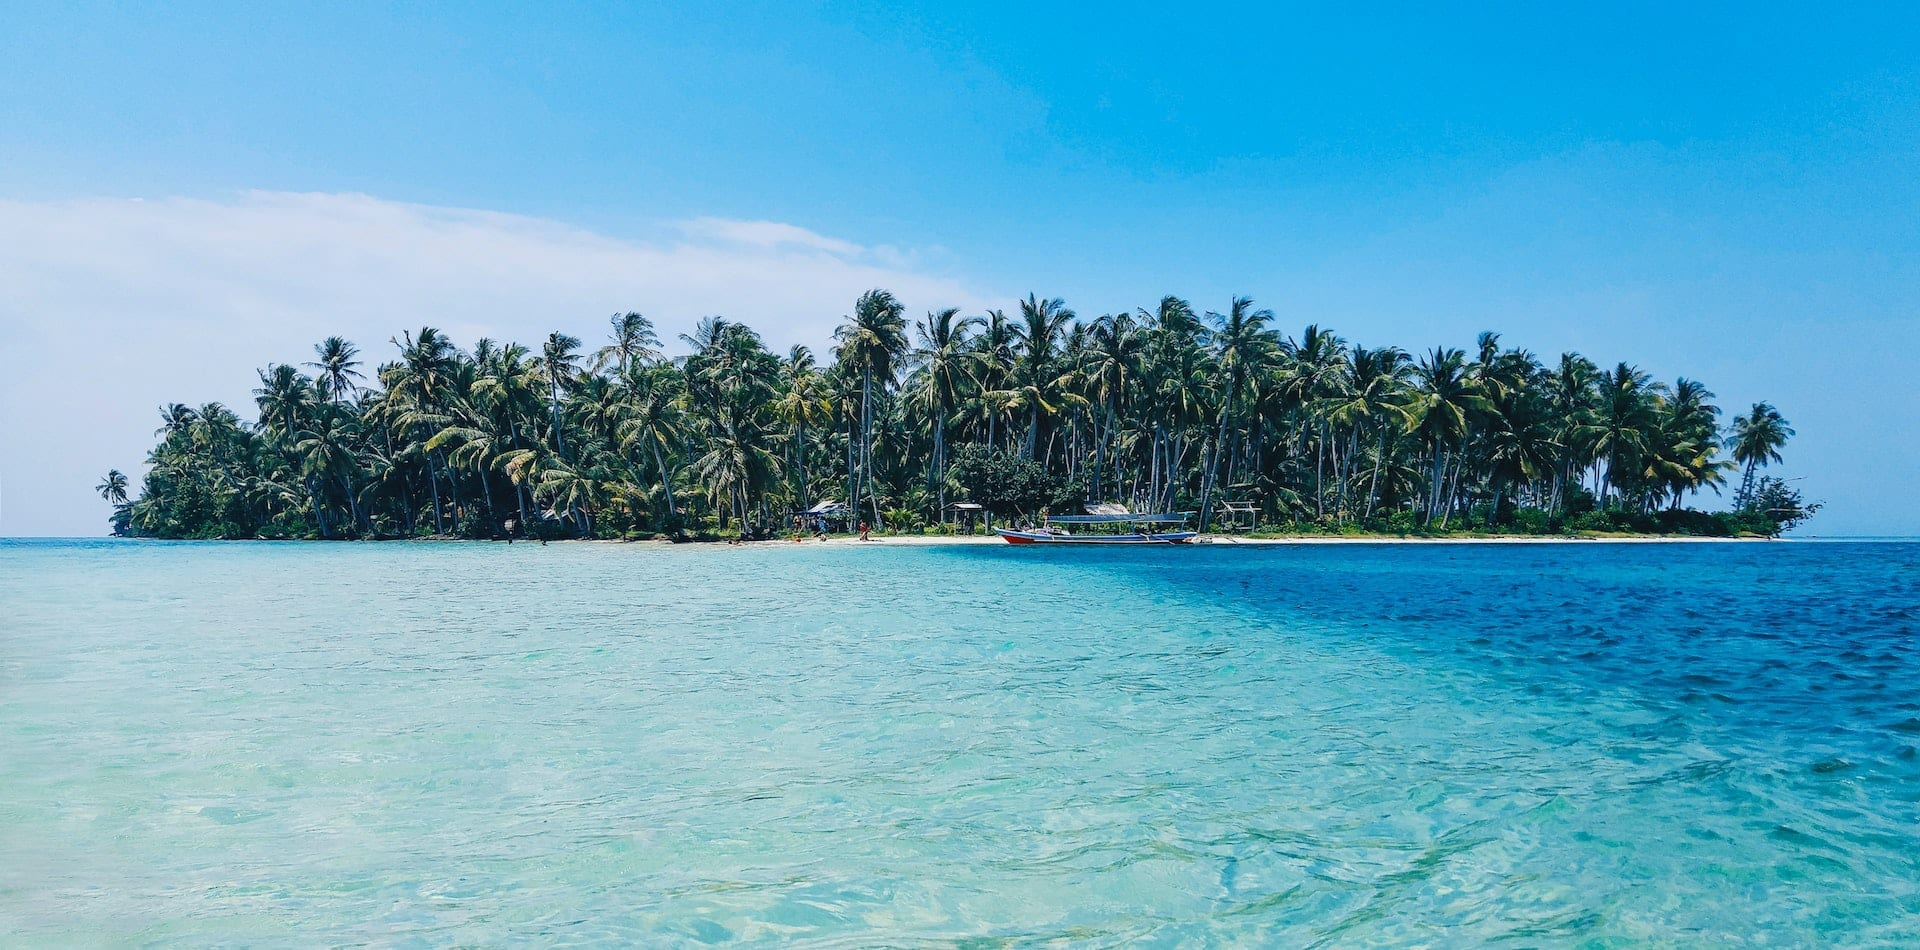 Remote and tropical palm tree island